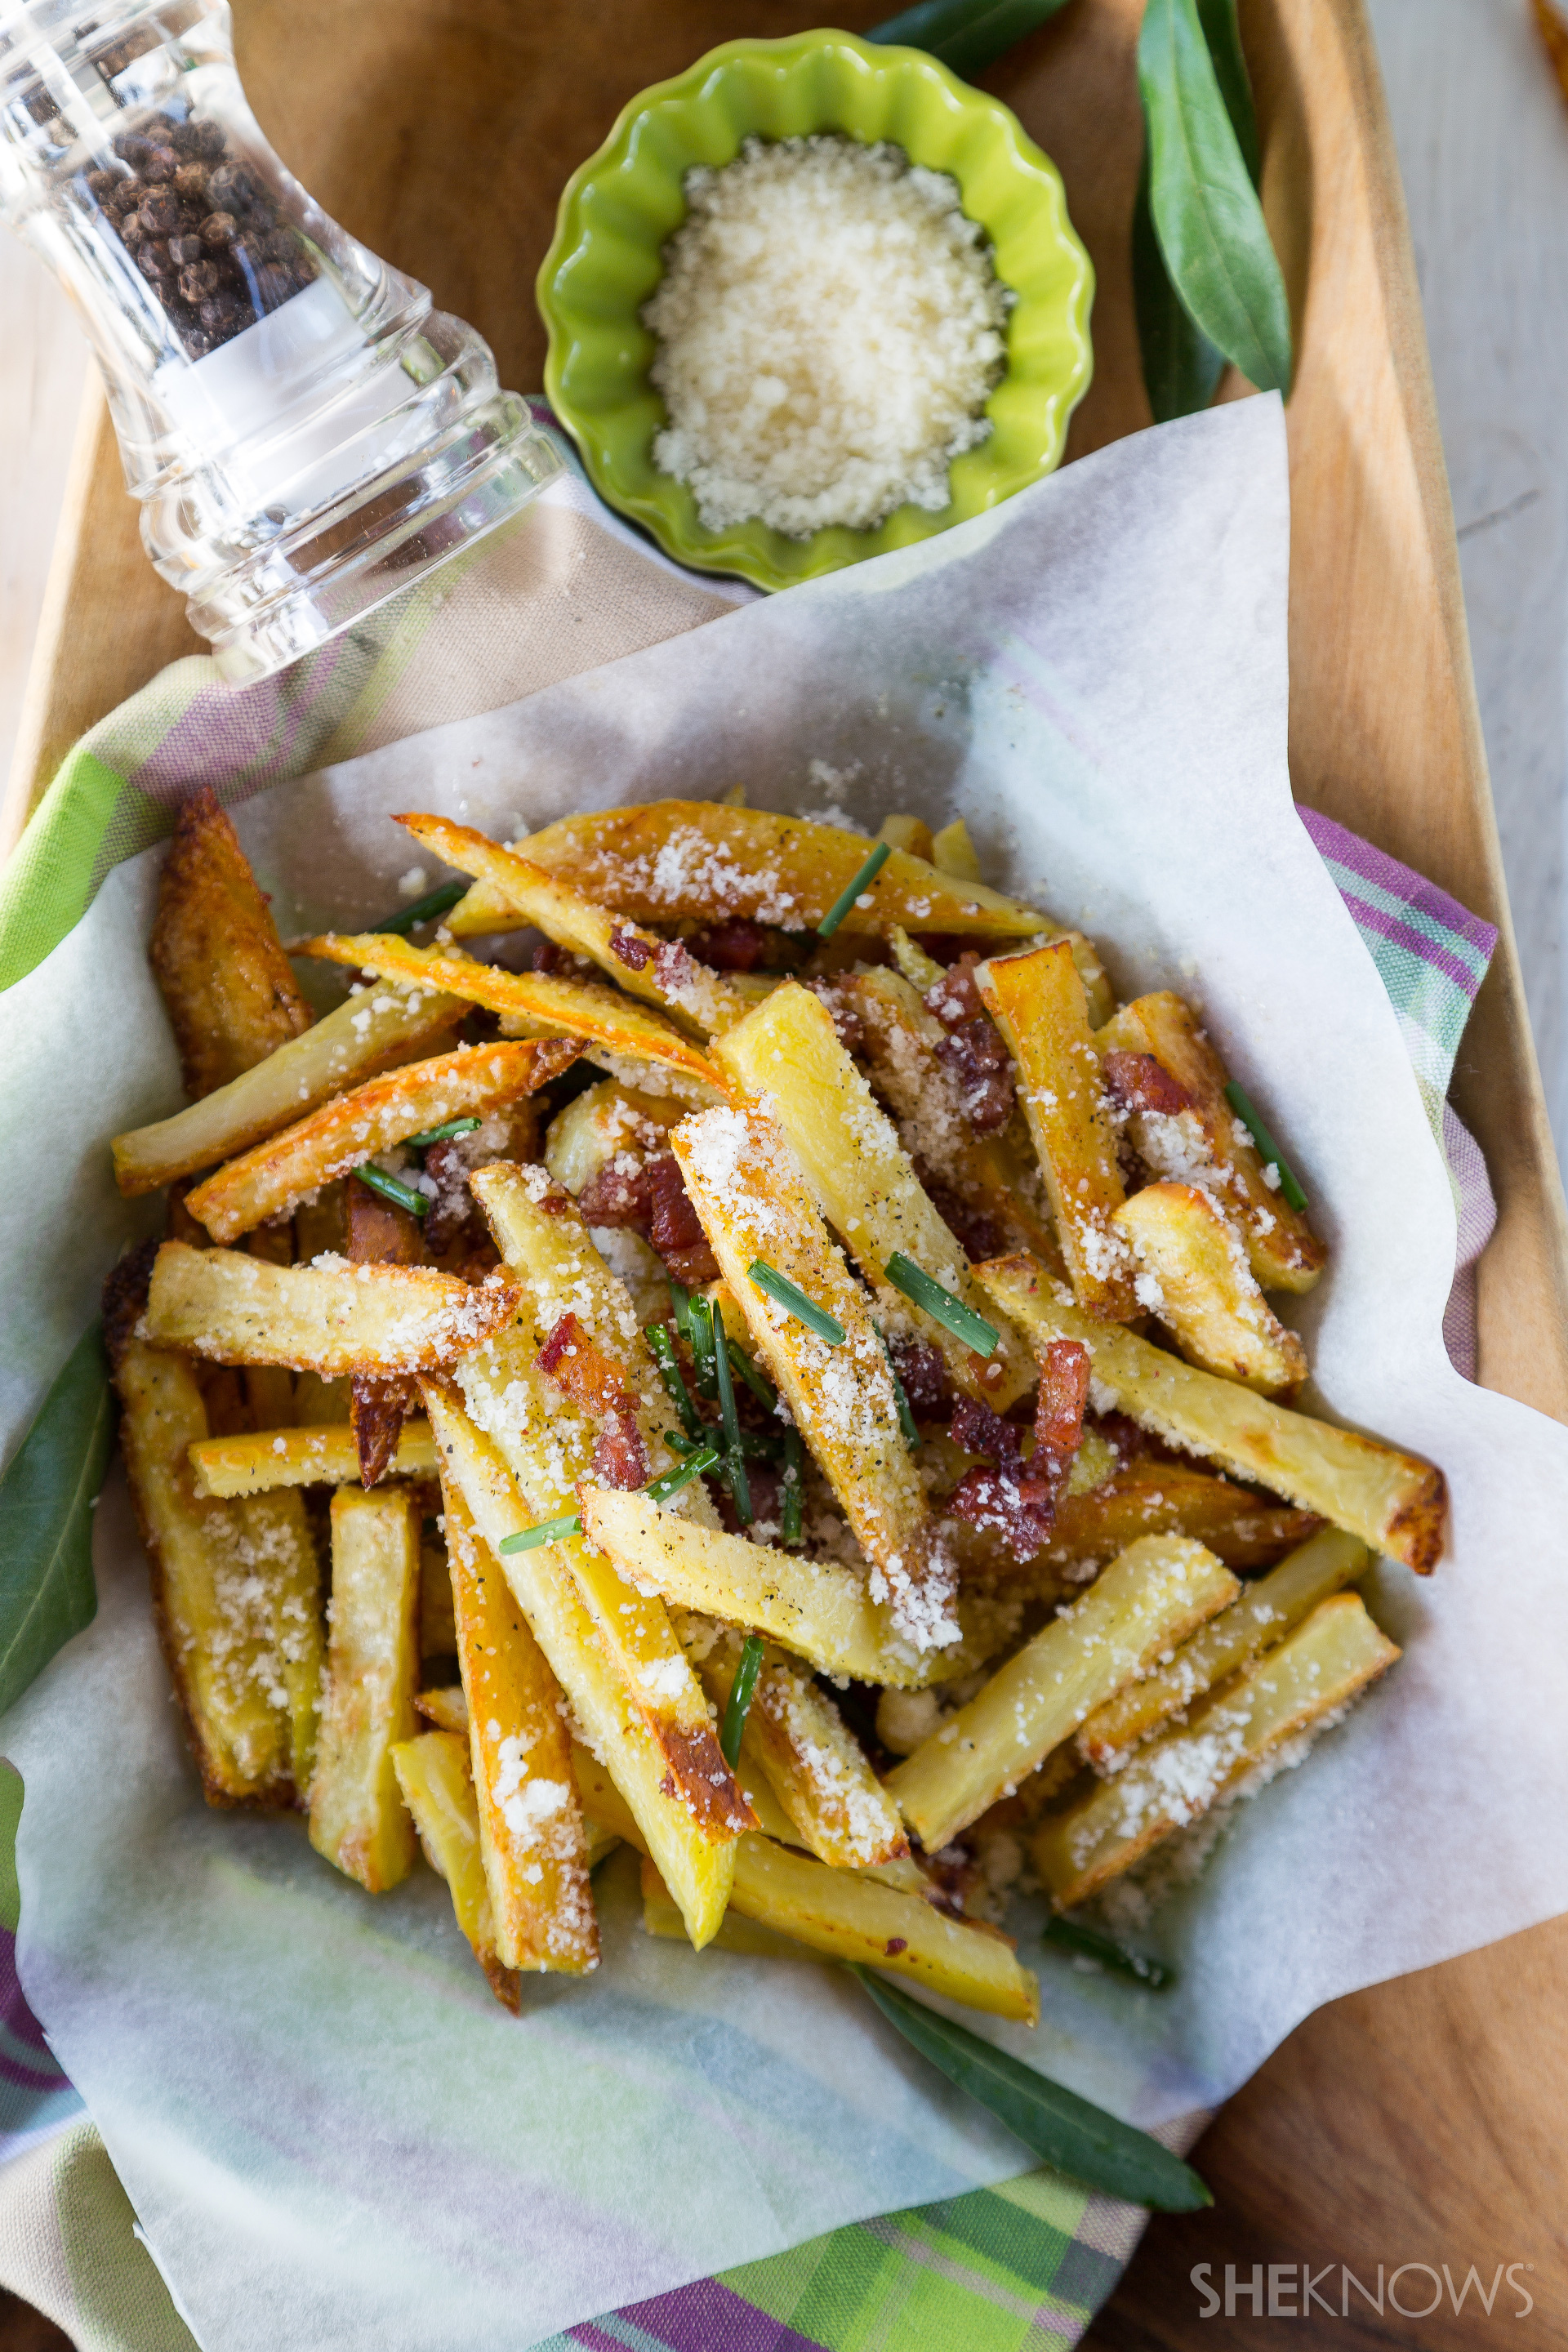 Baked fries full of our favorite pasta dish flavors